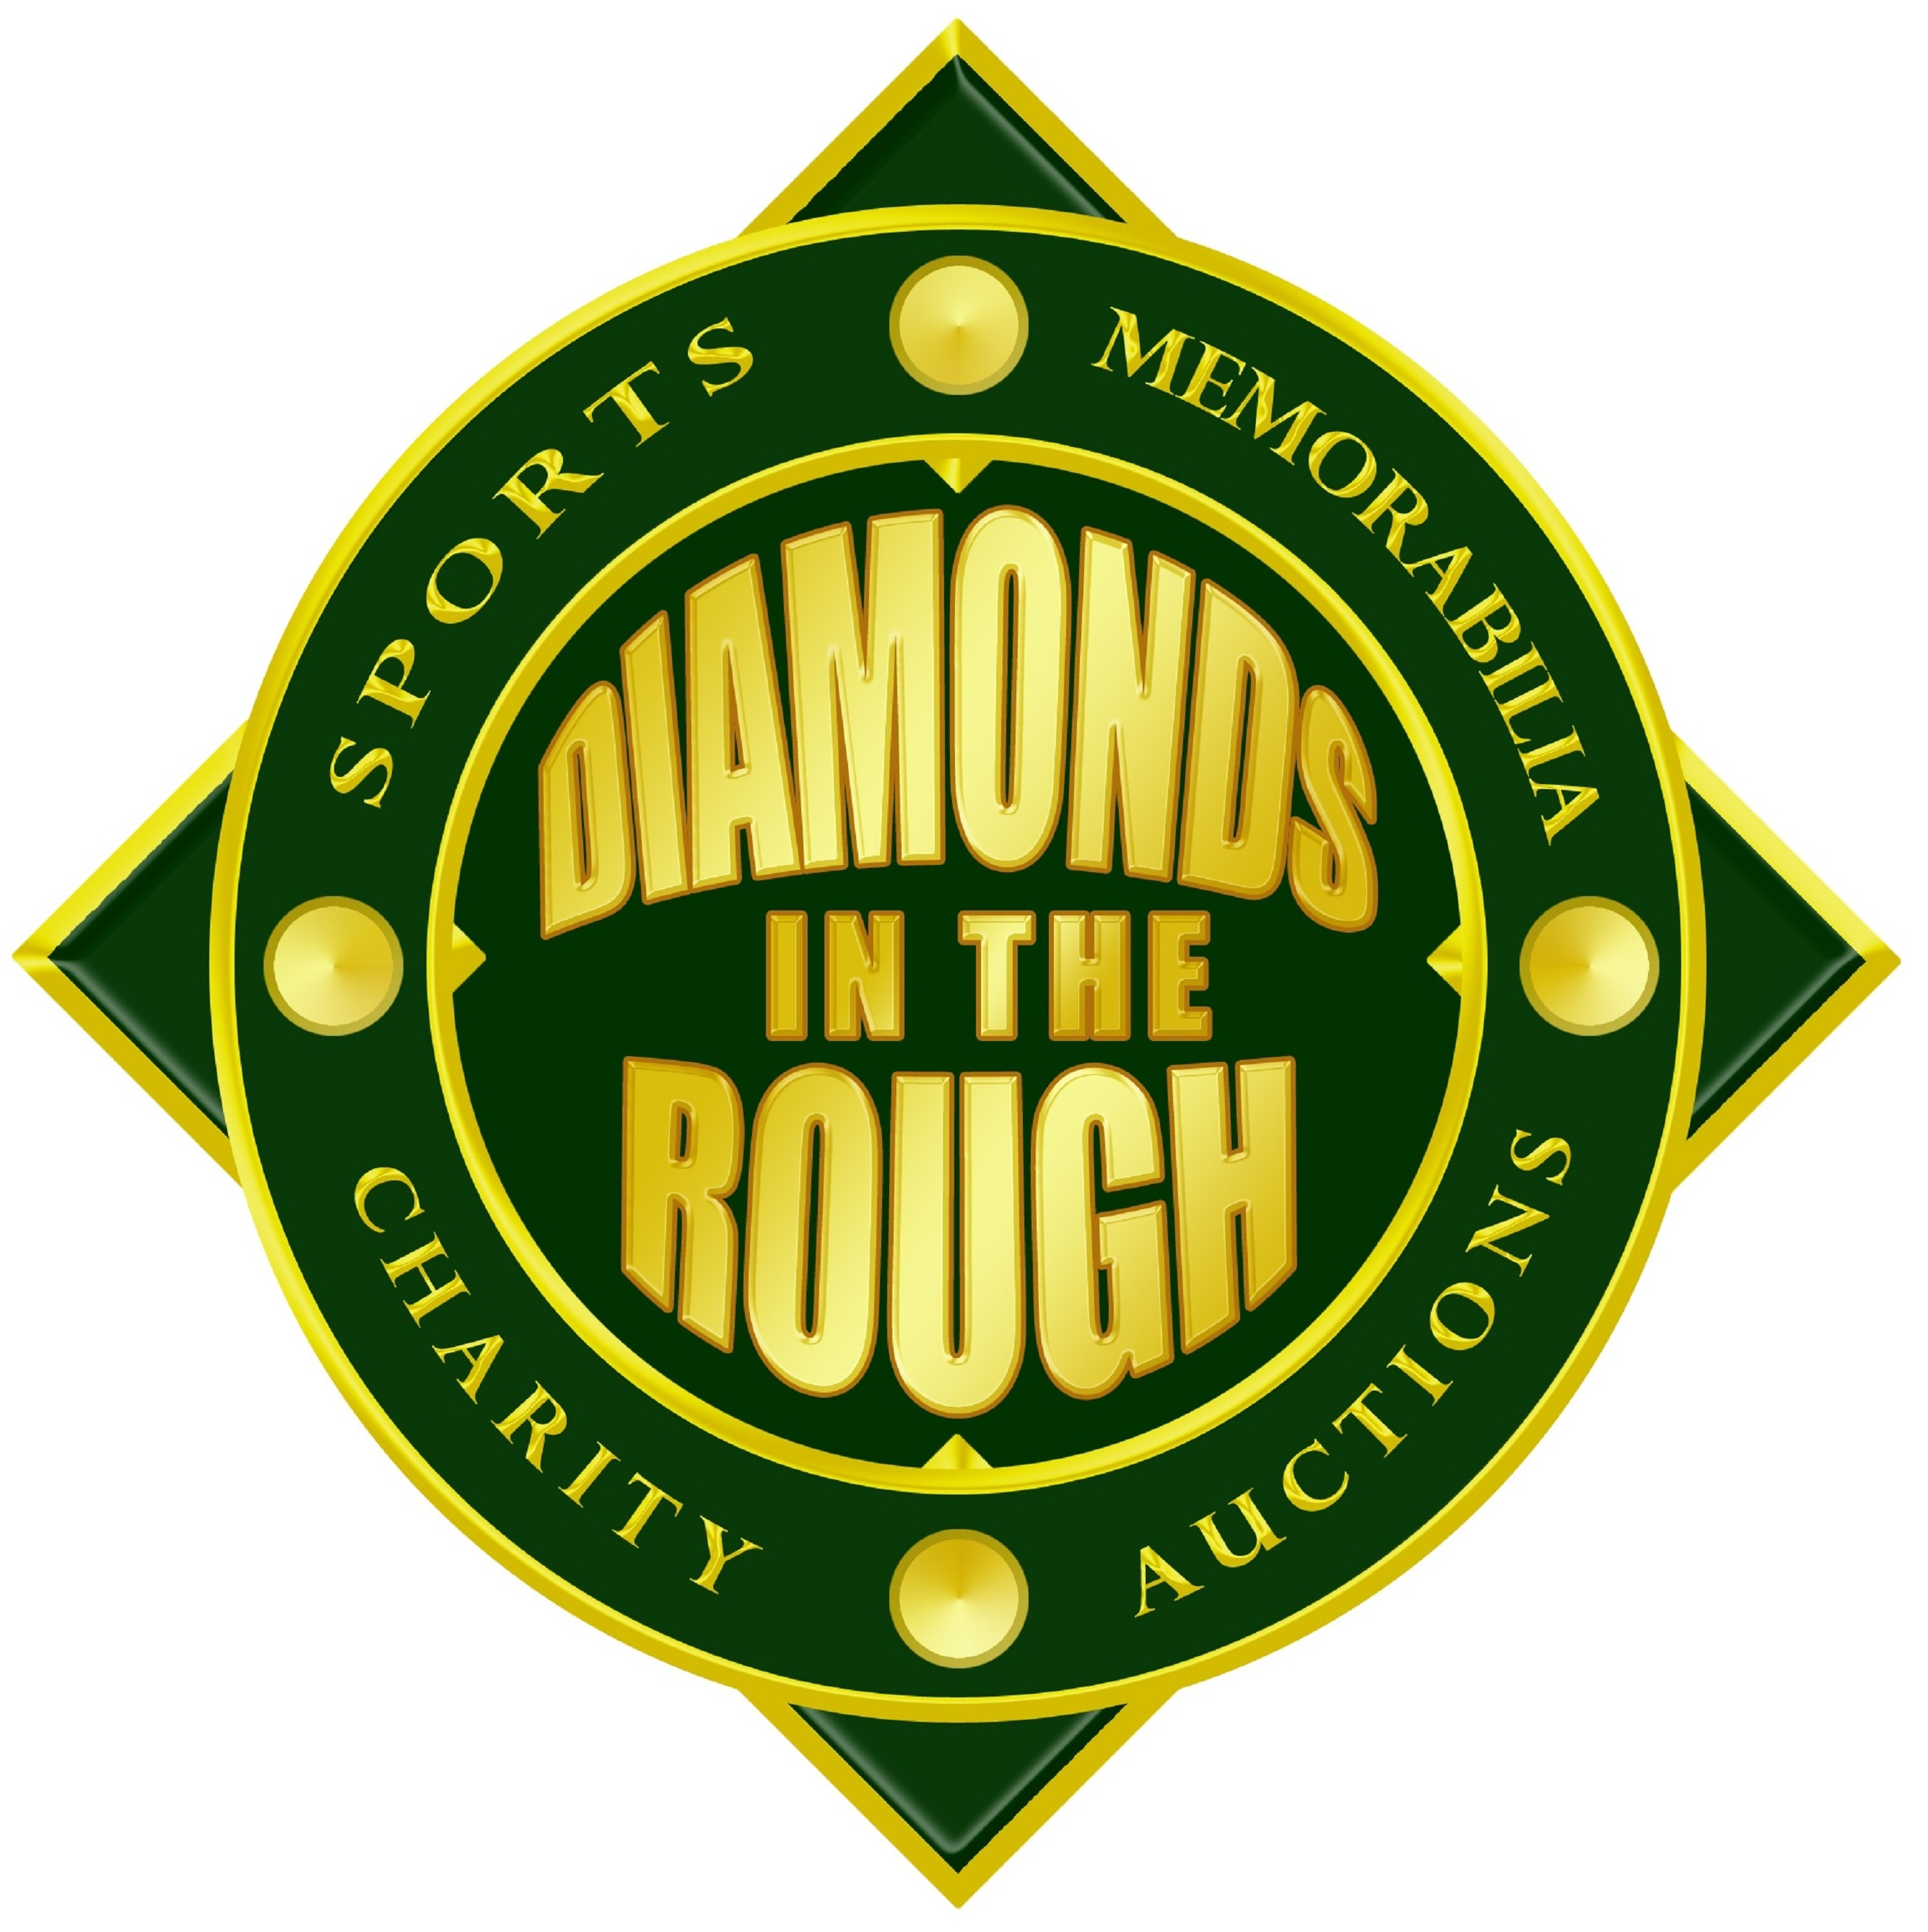 DiamondsInTheRough Logo